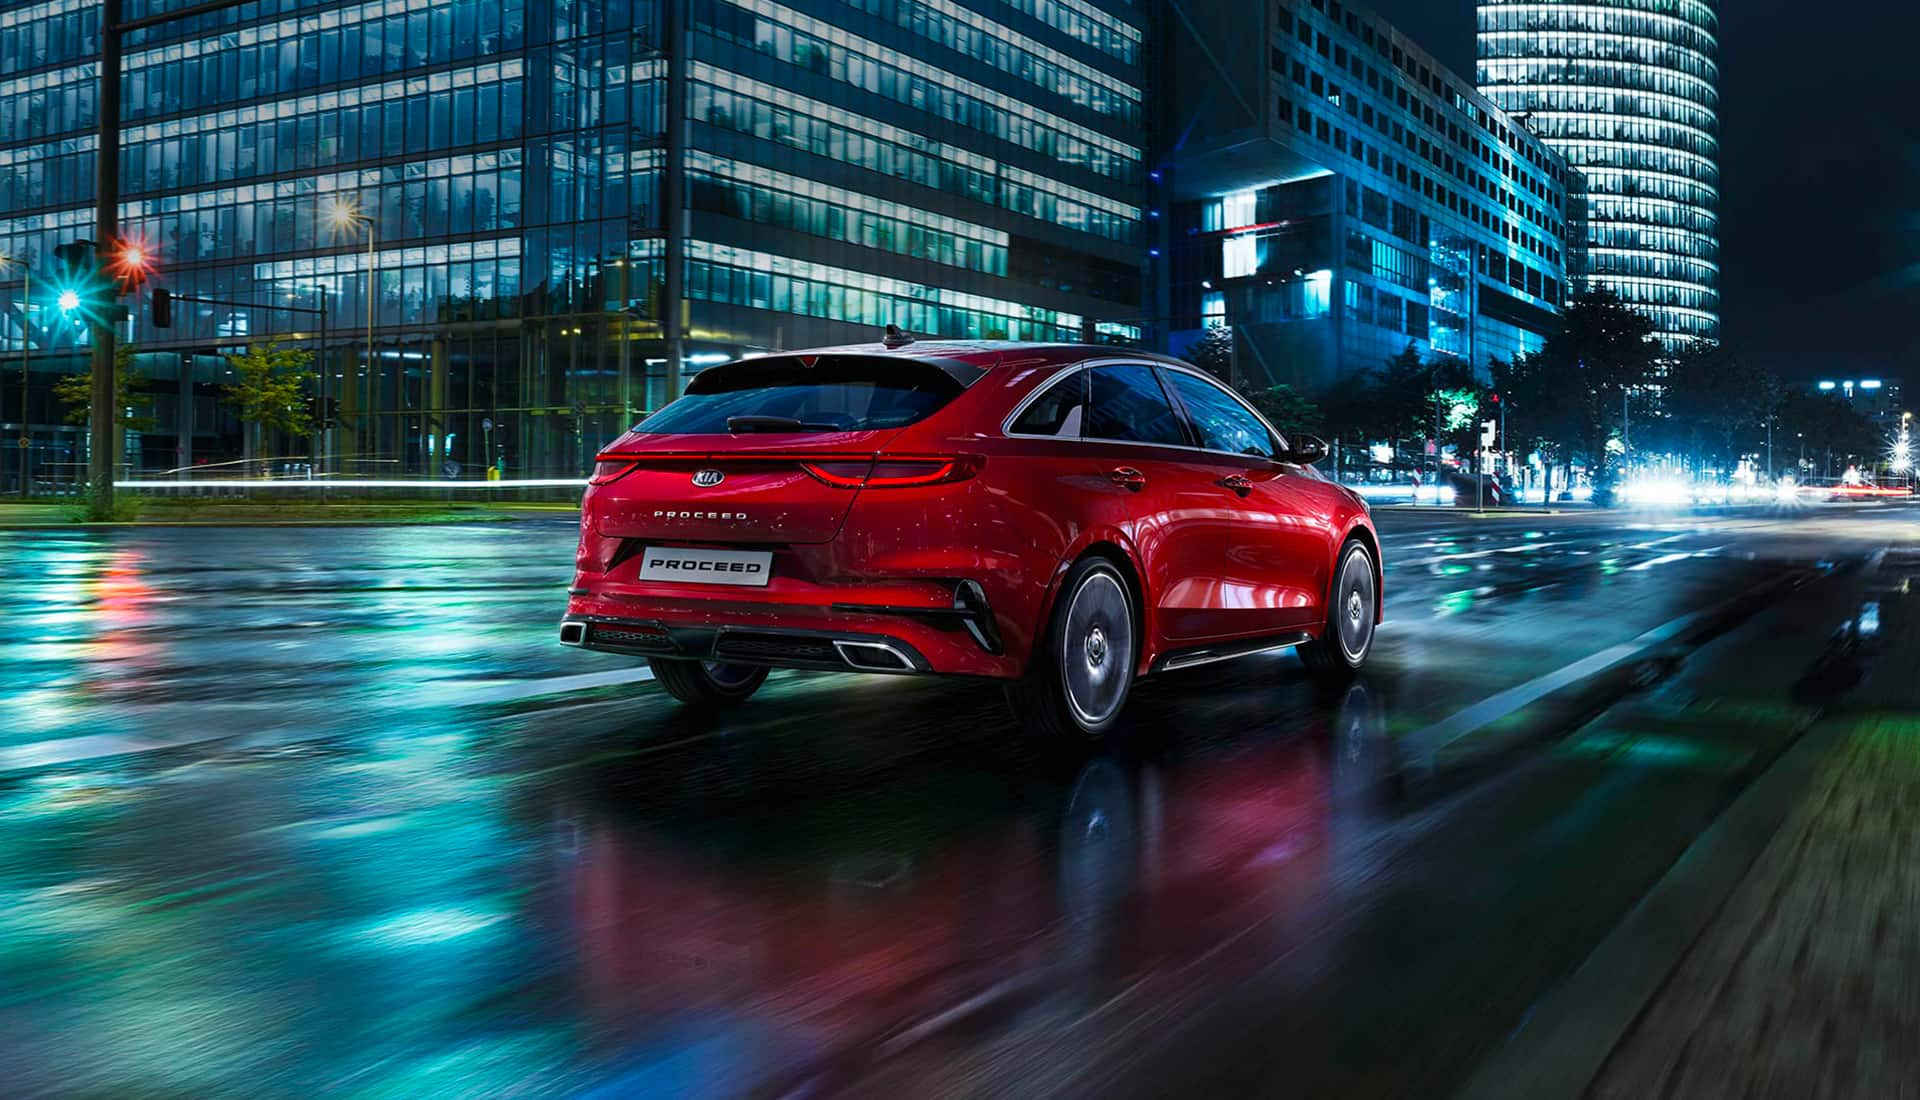 Kia ProCeed driving